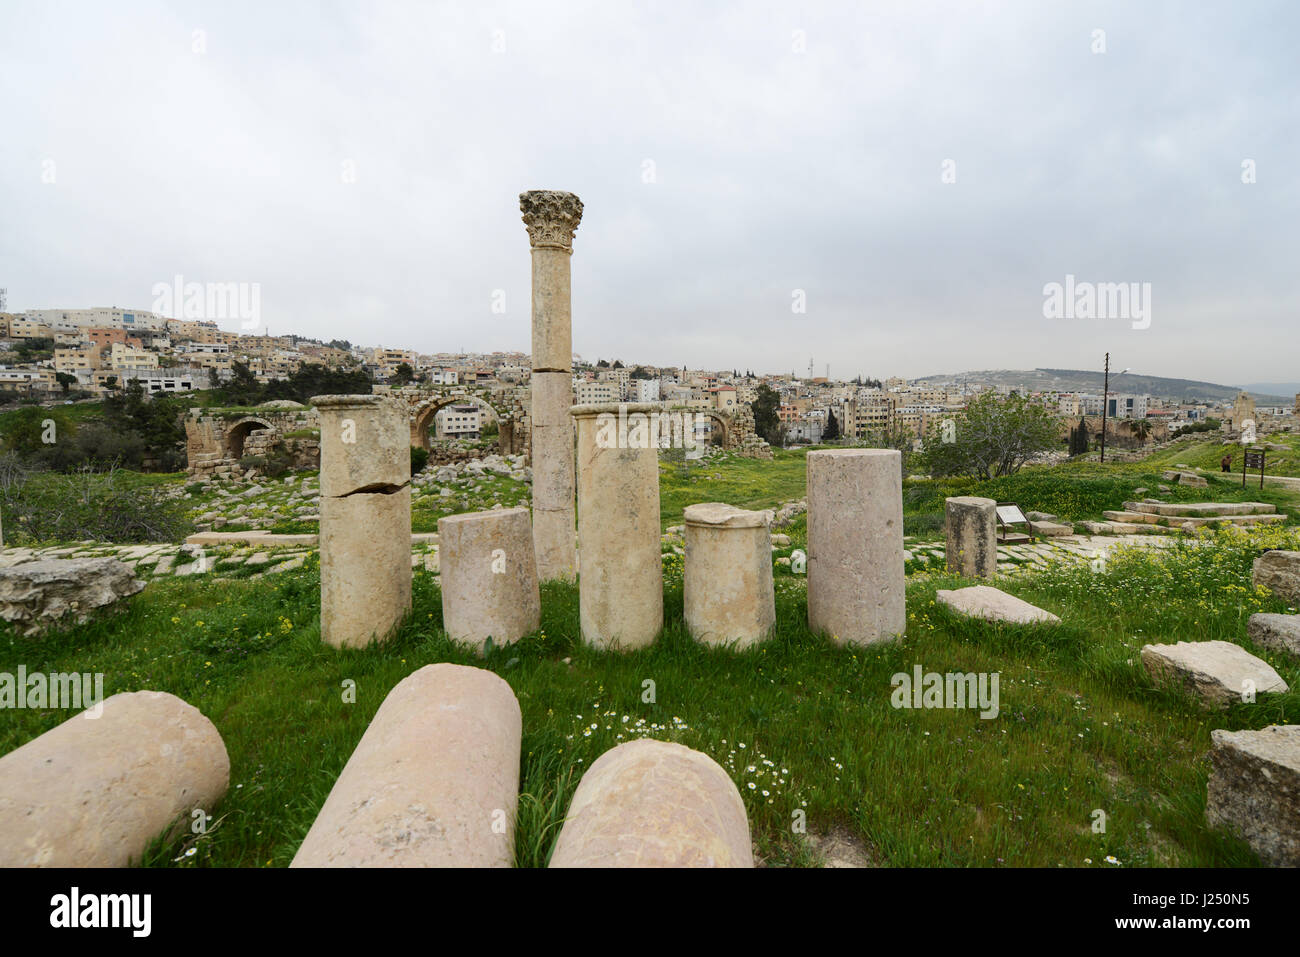 ancient Roman columns in the ancient Roman city of Jerash in Jordan. - Stock Image